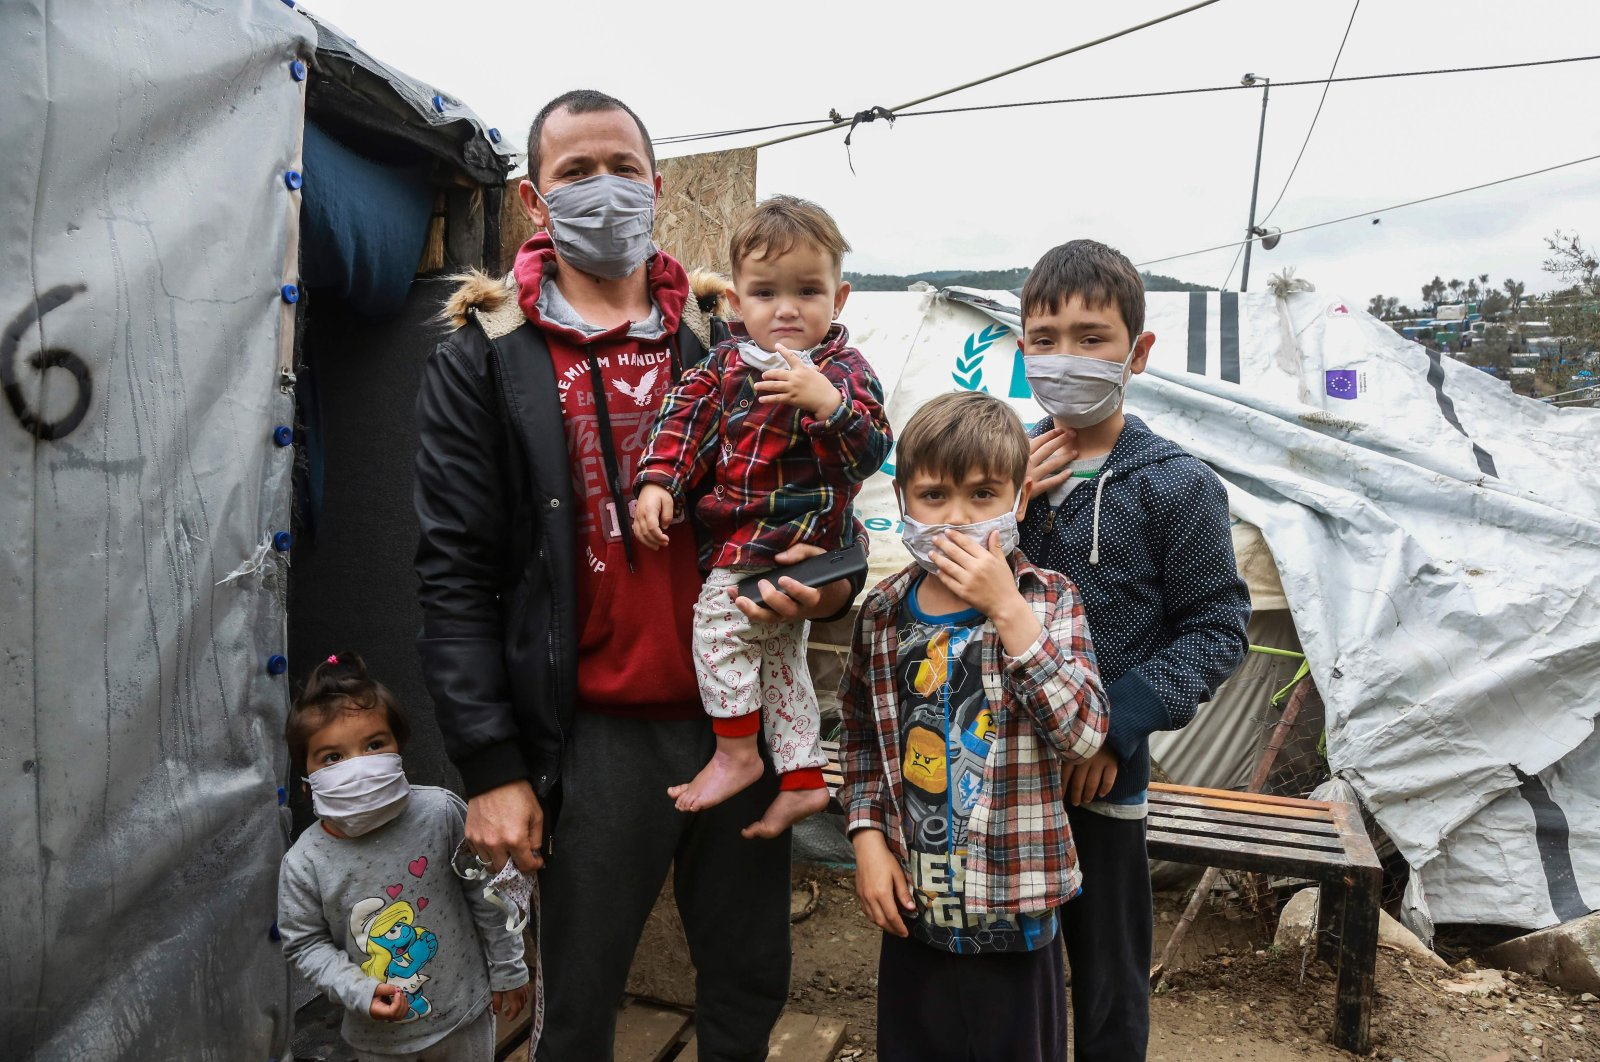 A migrant family wearing handmade protective face masks stand next to their tent in the camp of Moria in the island of Lesbos, Saturday, March 28, 2020. (AFP)